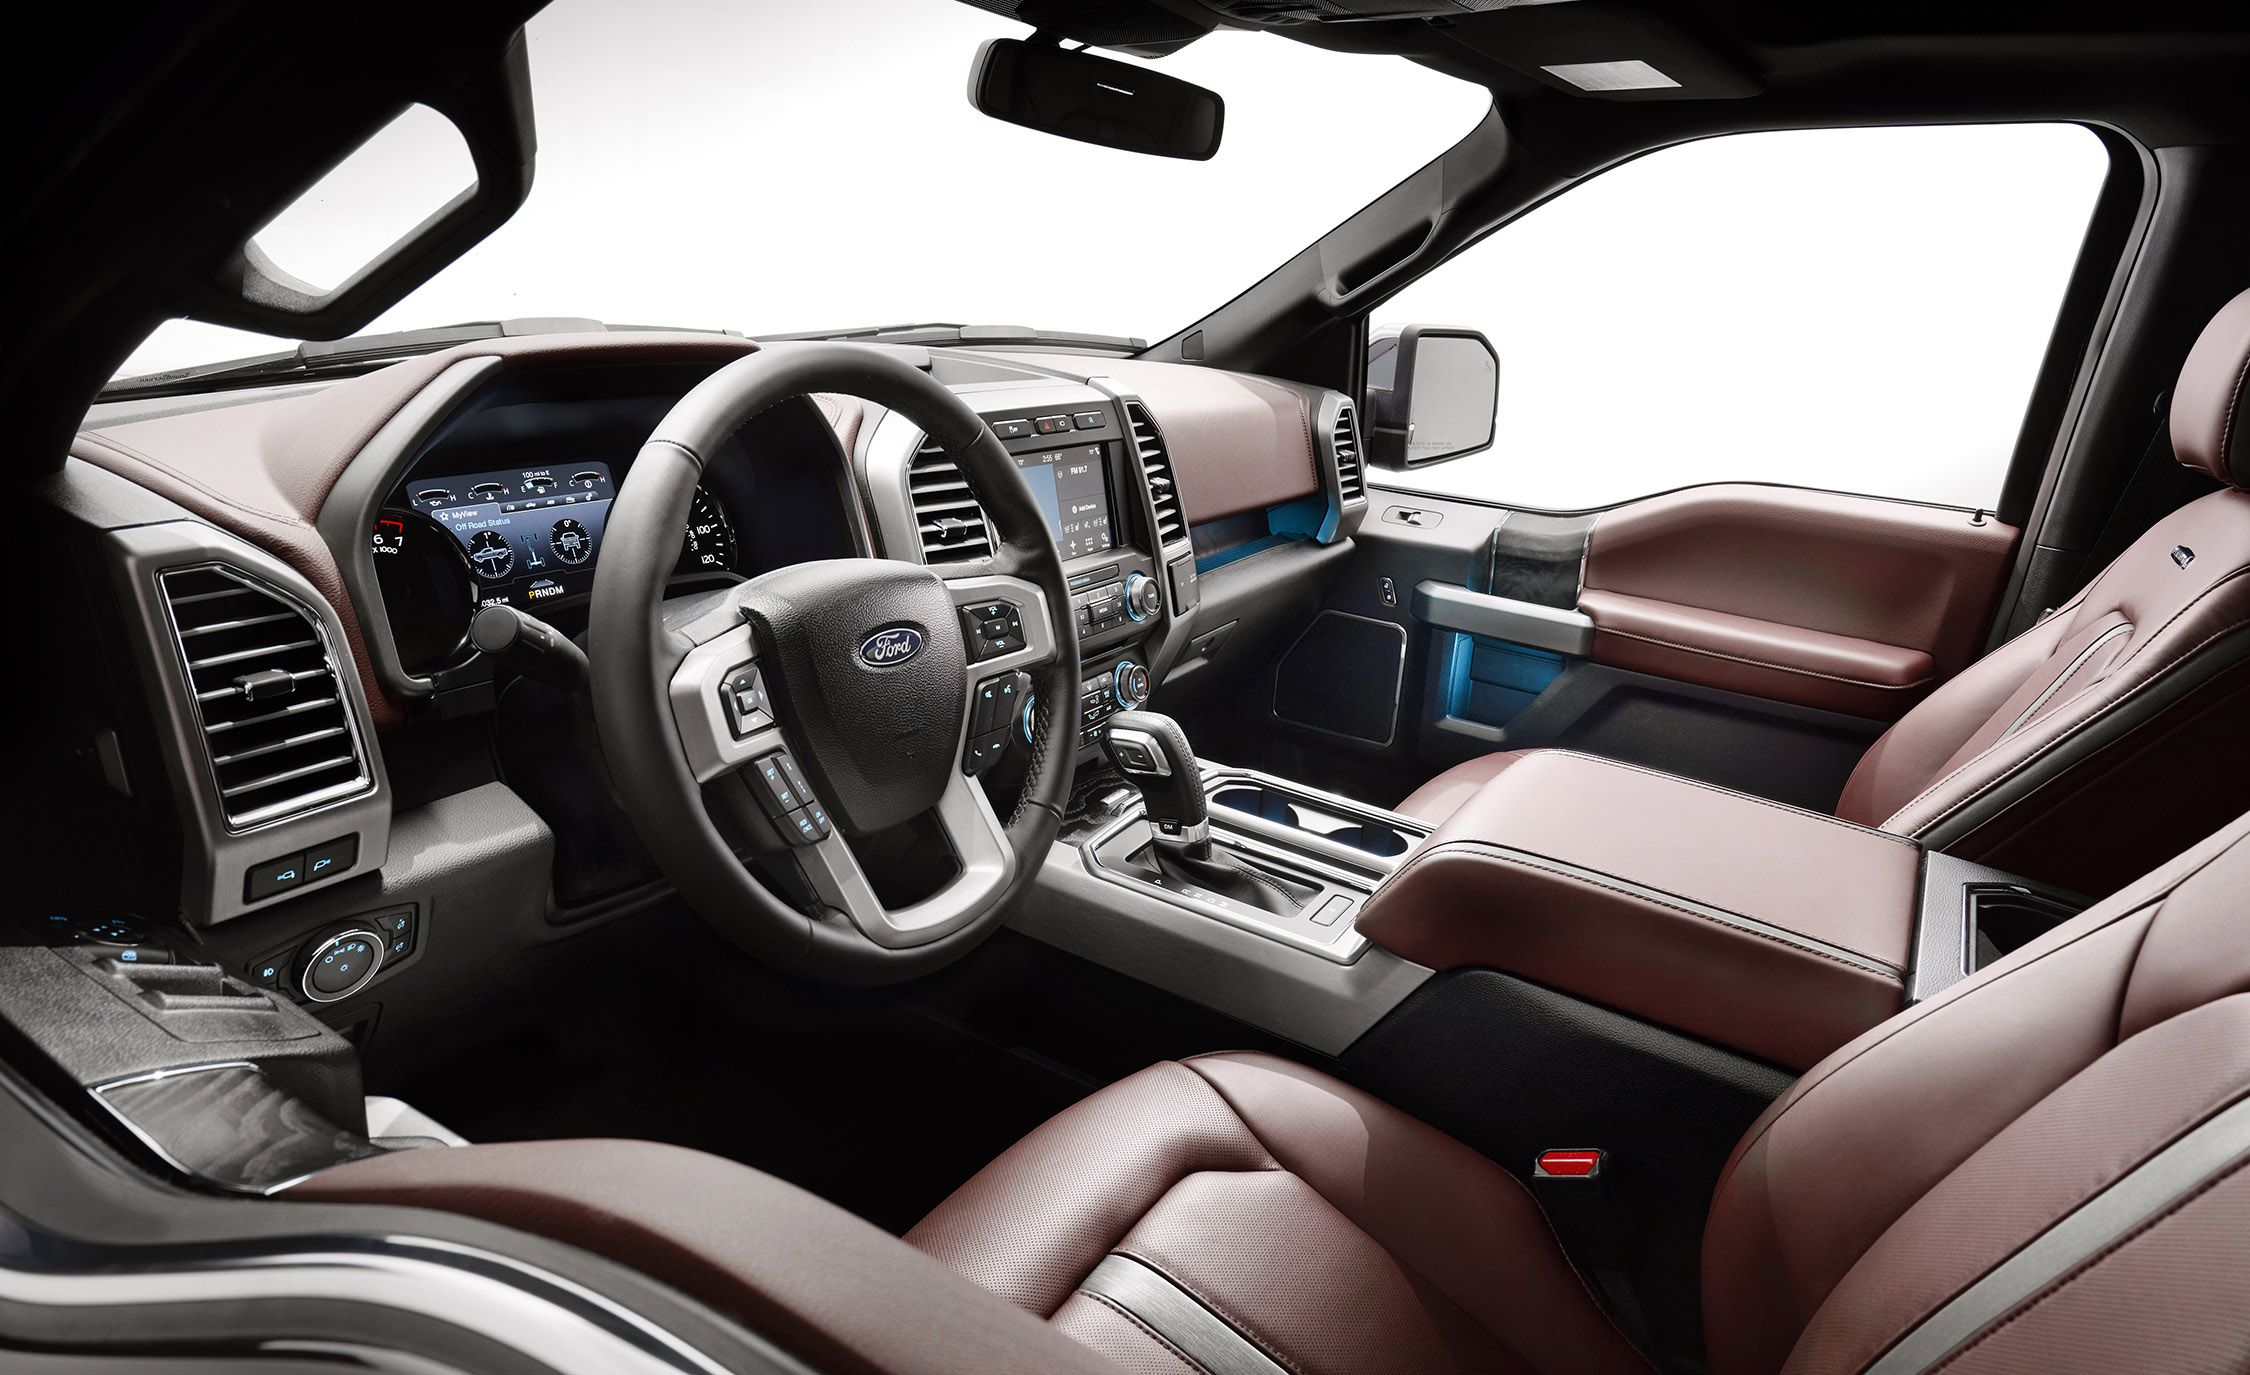 Ford F 150 Platinum Interior >> Ford F 150 2018 Vs 2017 Here S What S New On The 2018 Ford F 150